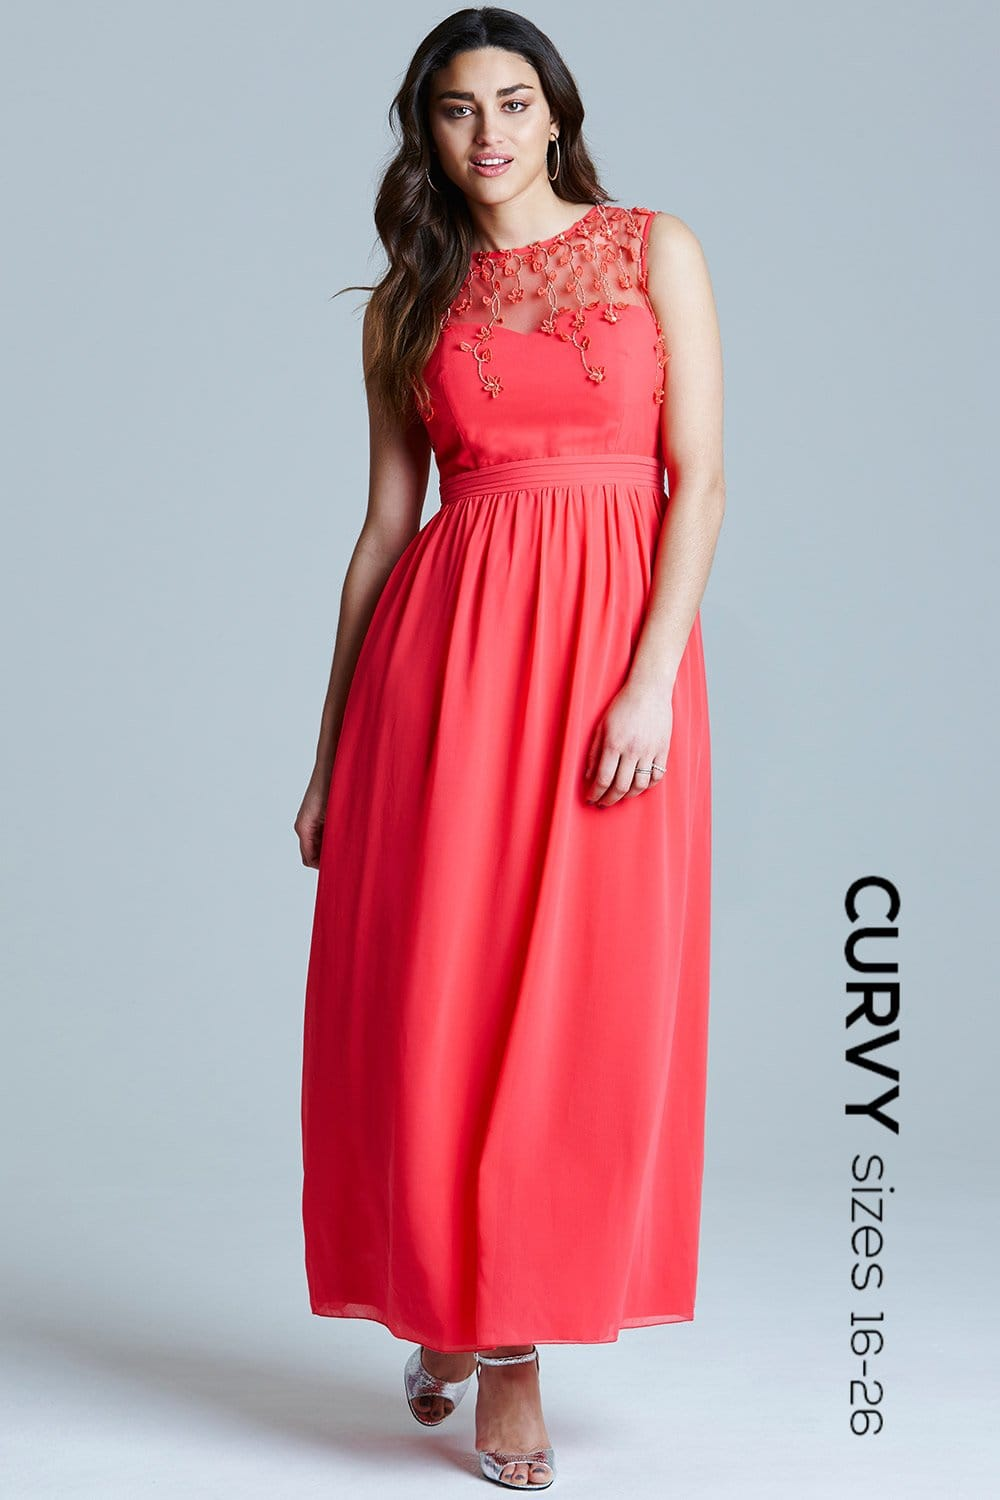 Curvy Coral Mesh Overlay Embroidered Maxi Dress From